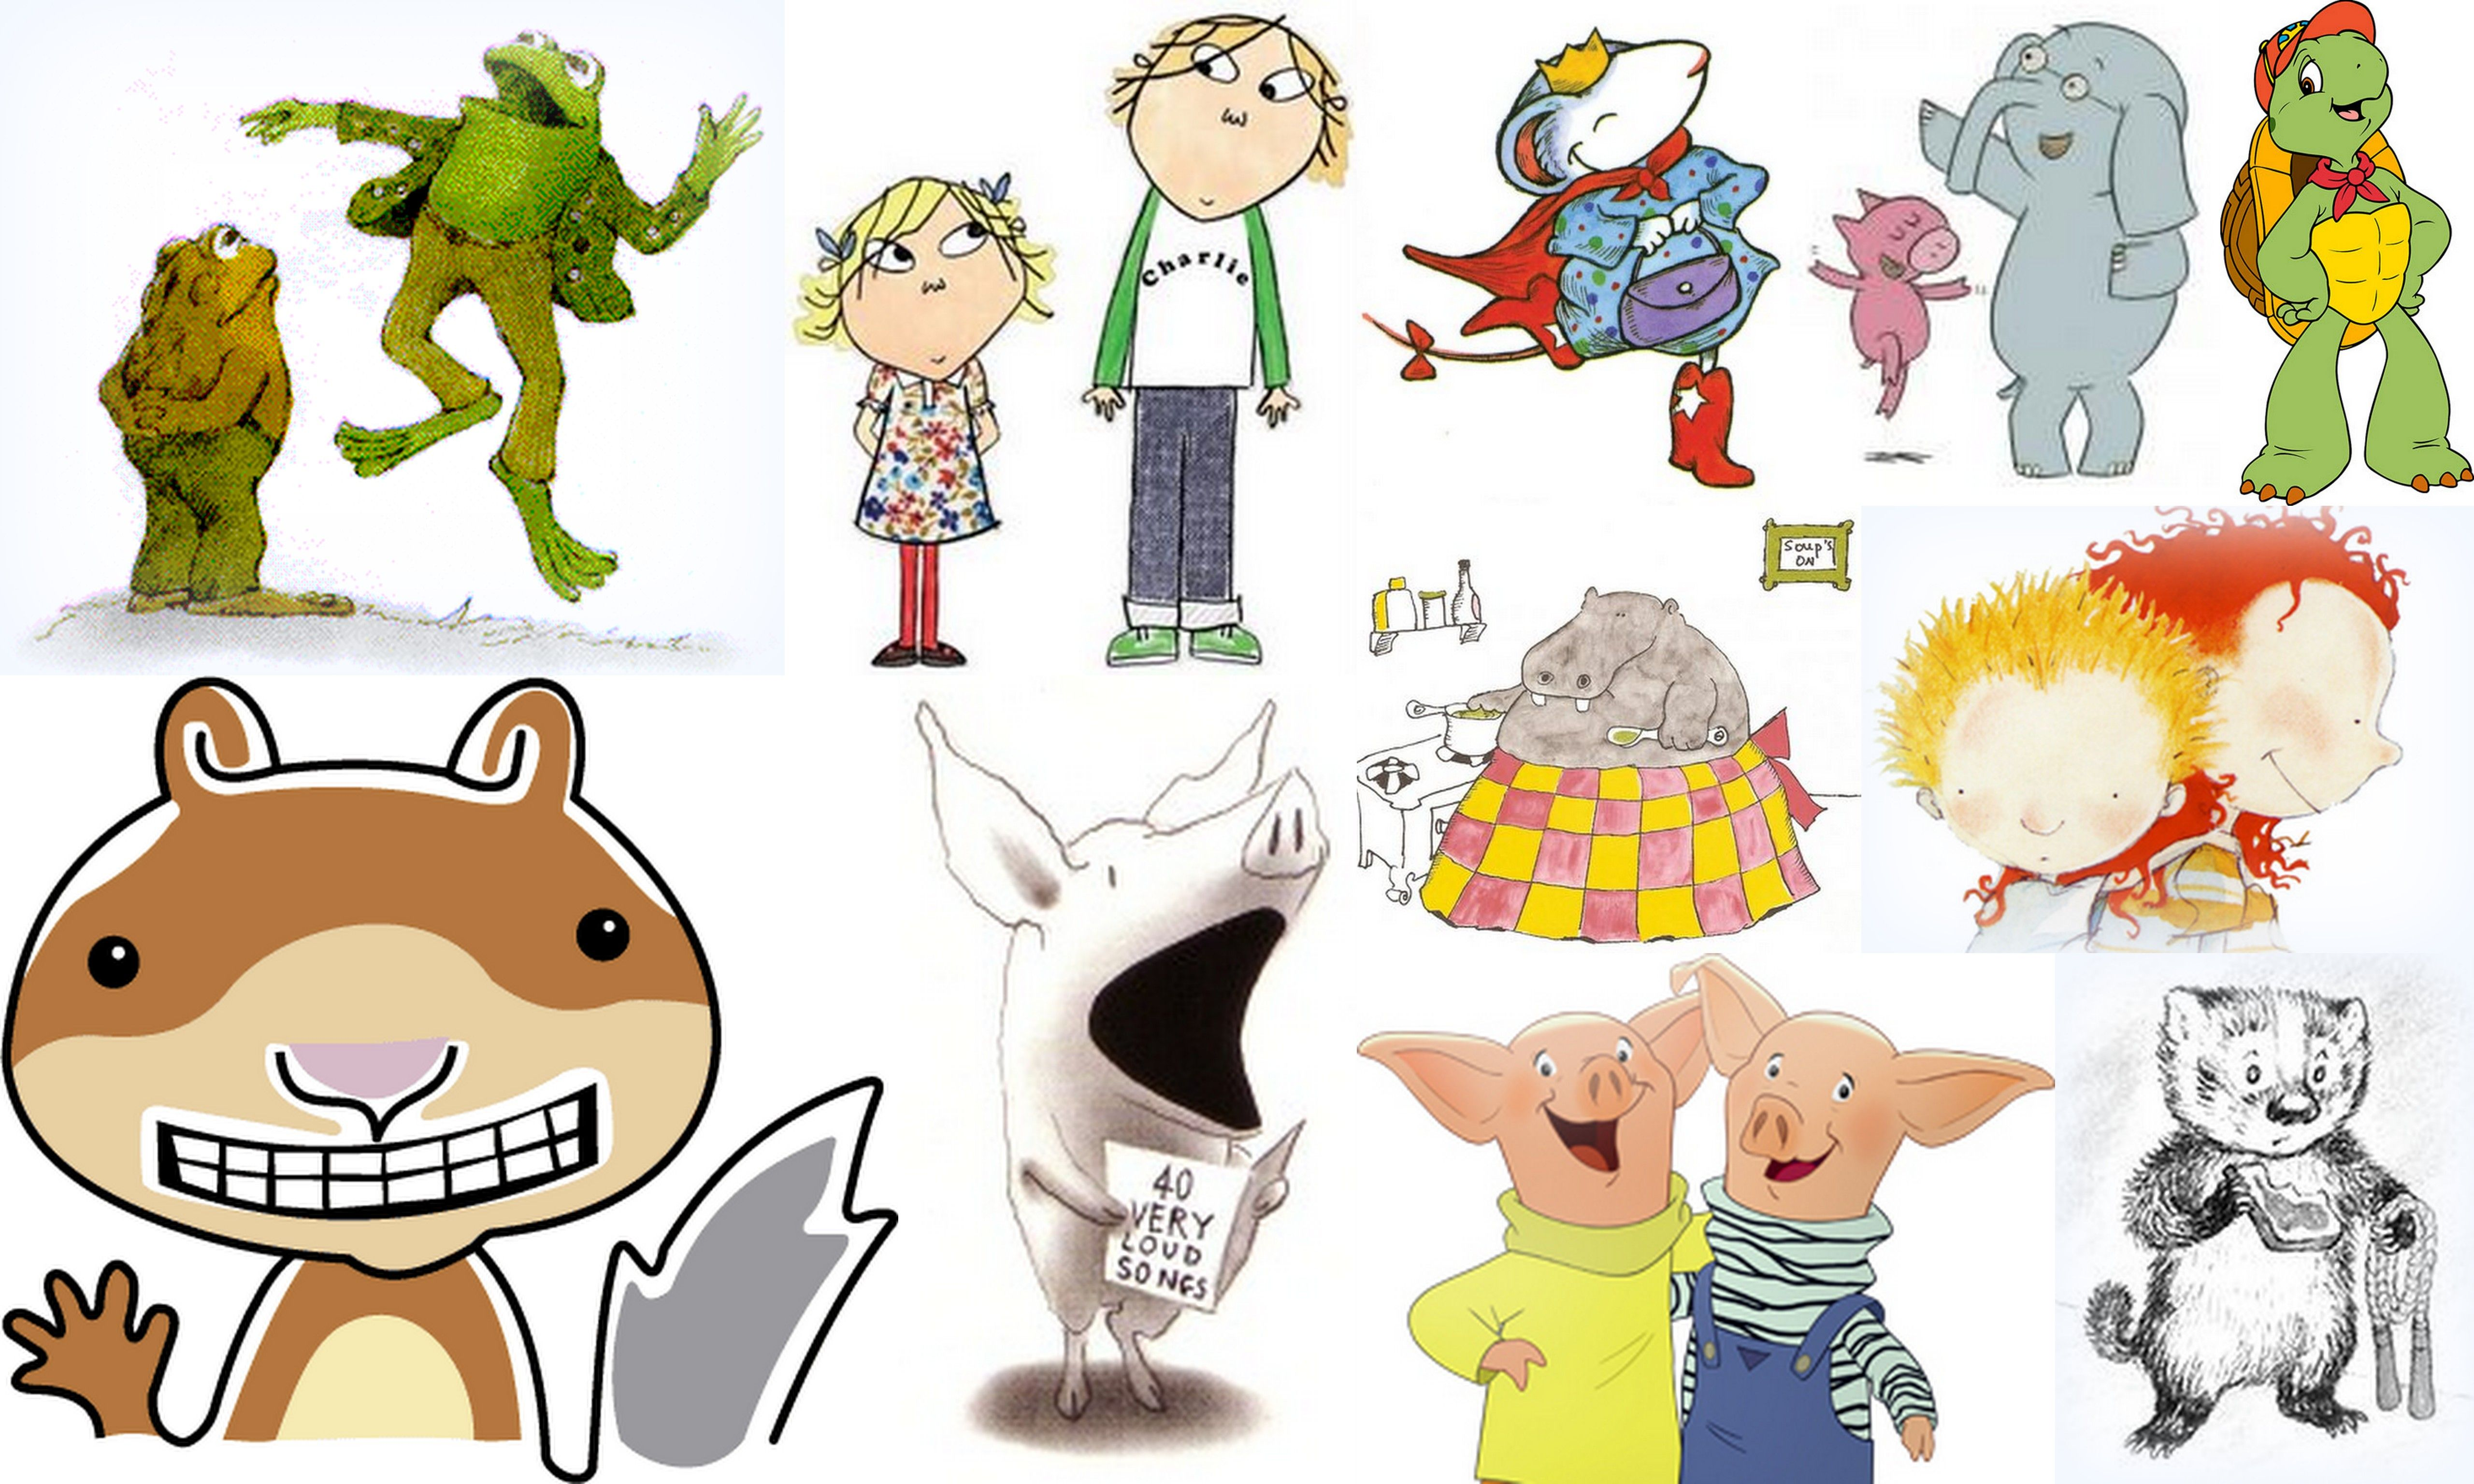 Popular book characters in picture books